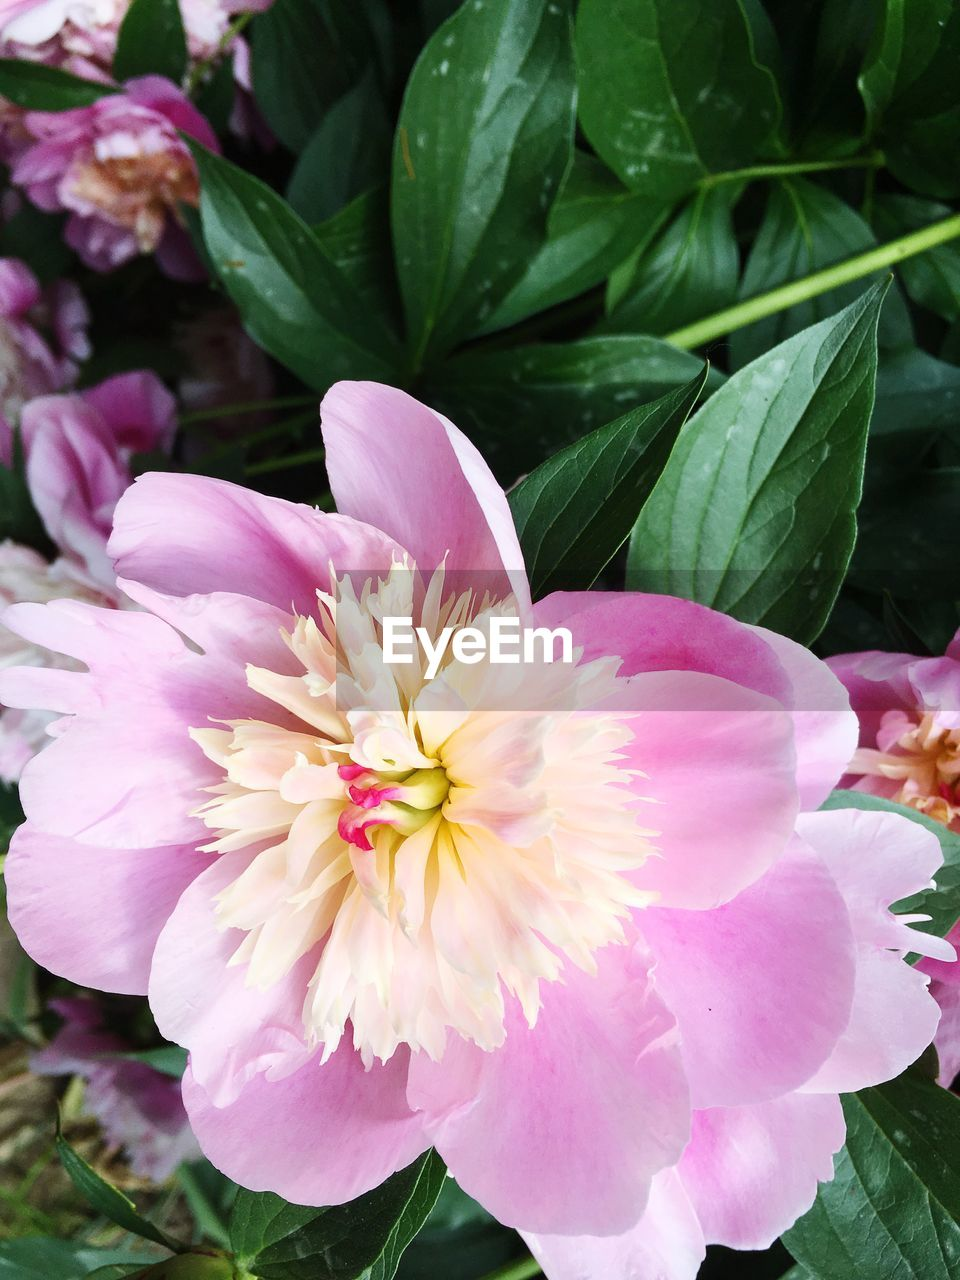 flower, flowering plant, plant, freshness, petal, beauty in nature, fragility, vulnerability, flower head, inflorescence, growth, pink color, leaf, plant part, close-up, nature, no people, day, pollen, outdoors